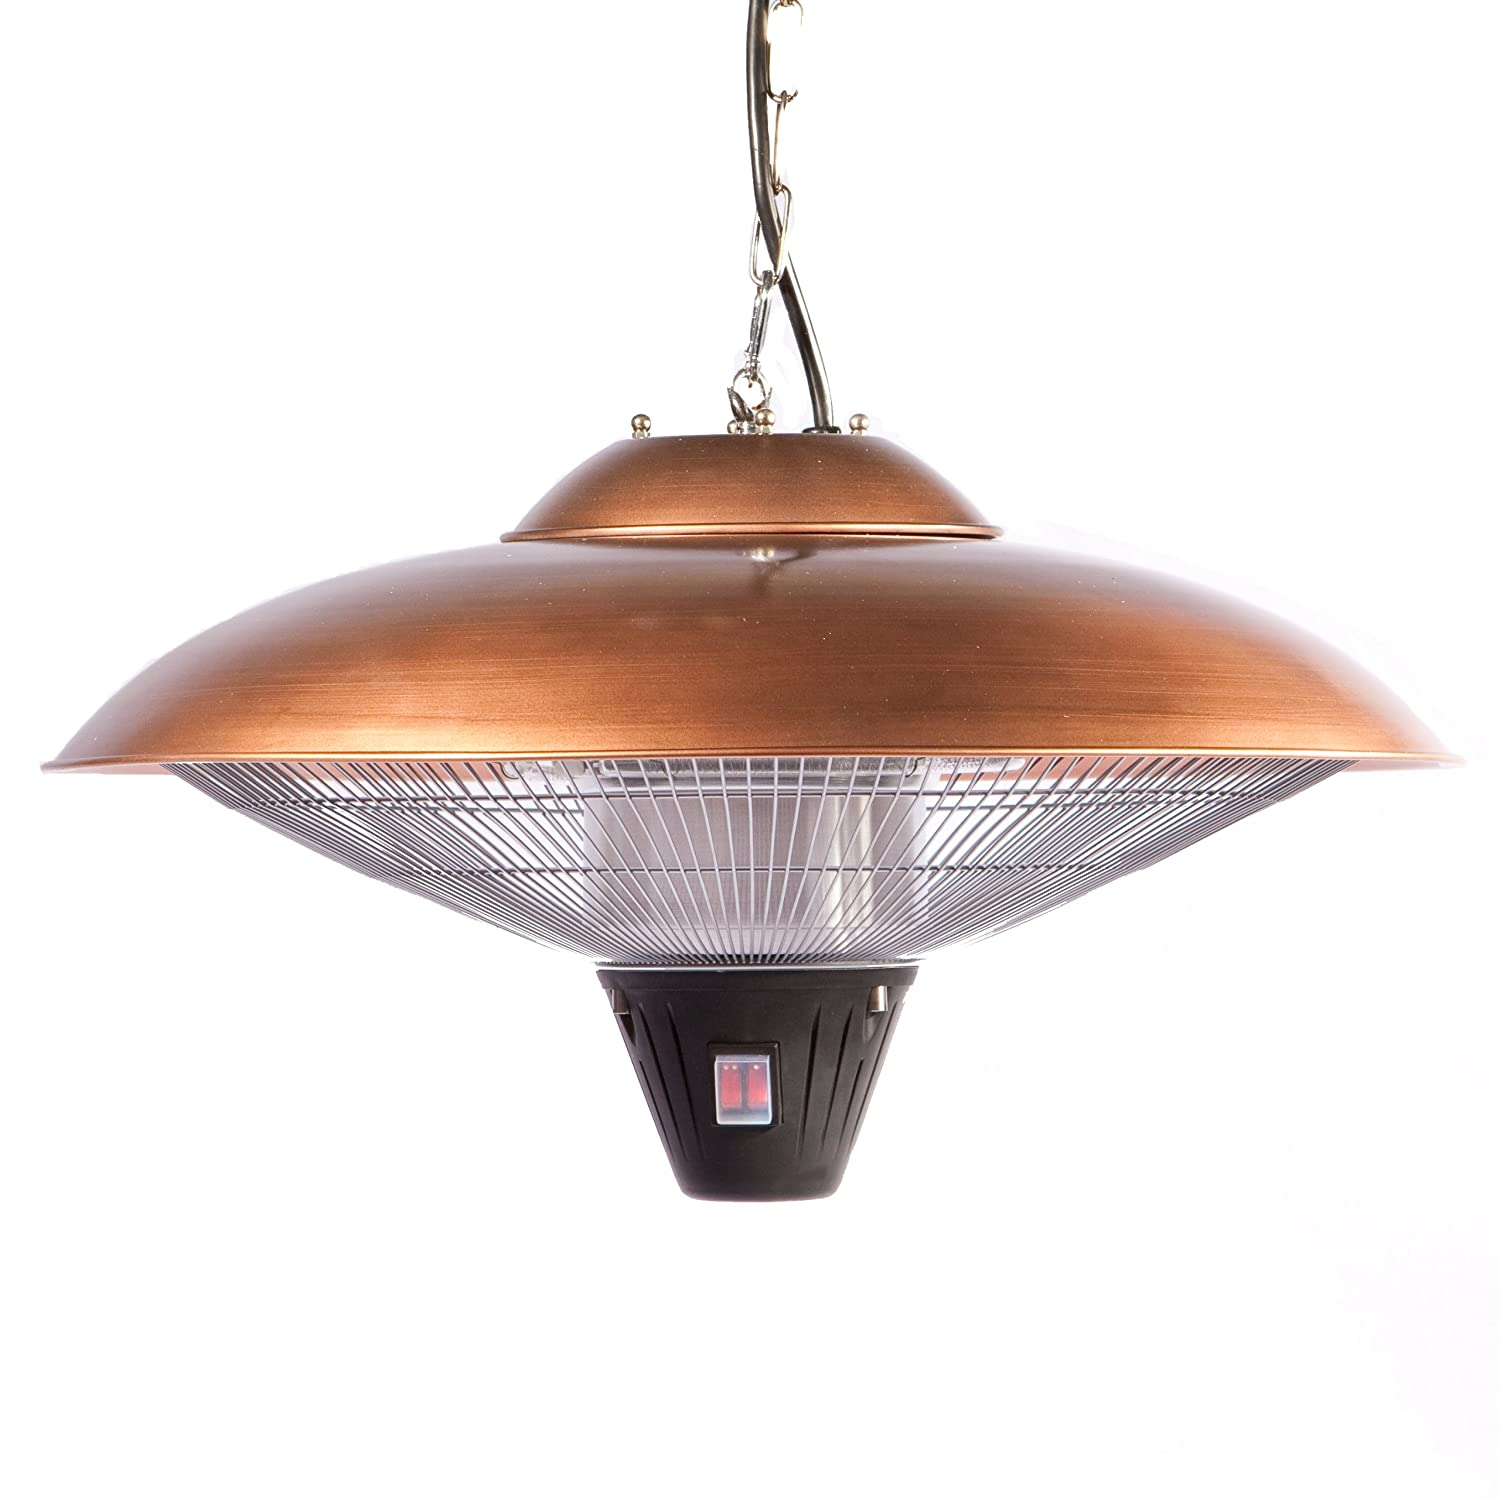 Amazon firesense hanging halogen patio heater finish amazon firesense hanging halogen patio heater finish copper portable outdoor heating garden outdoor arubaitofo Image collections